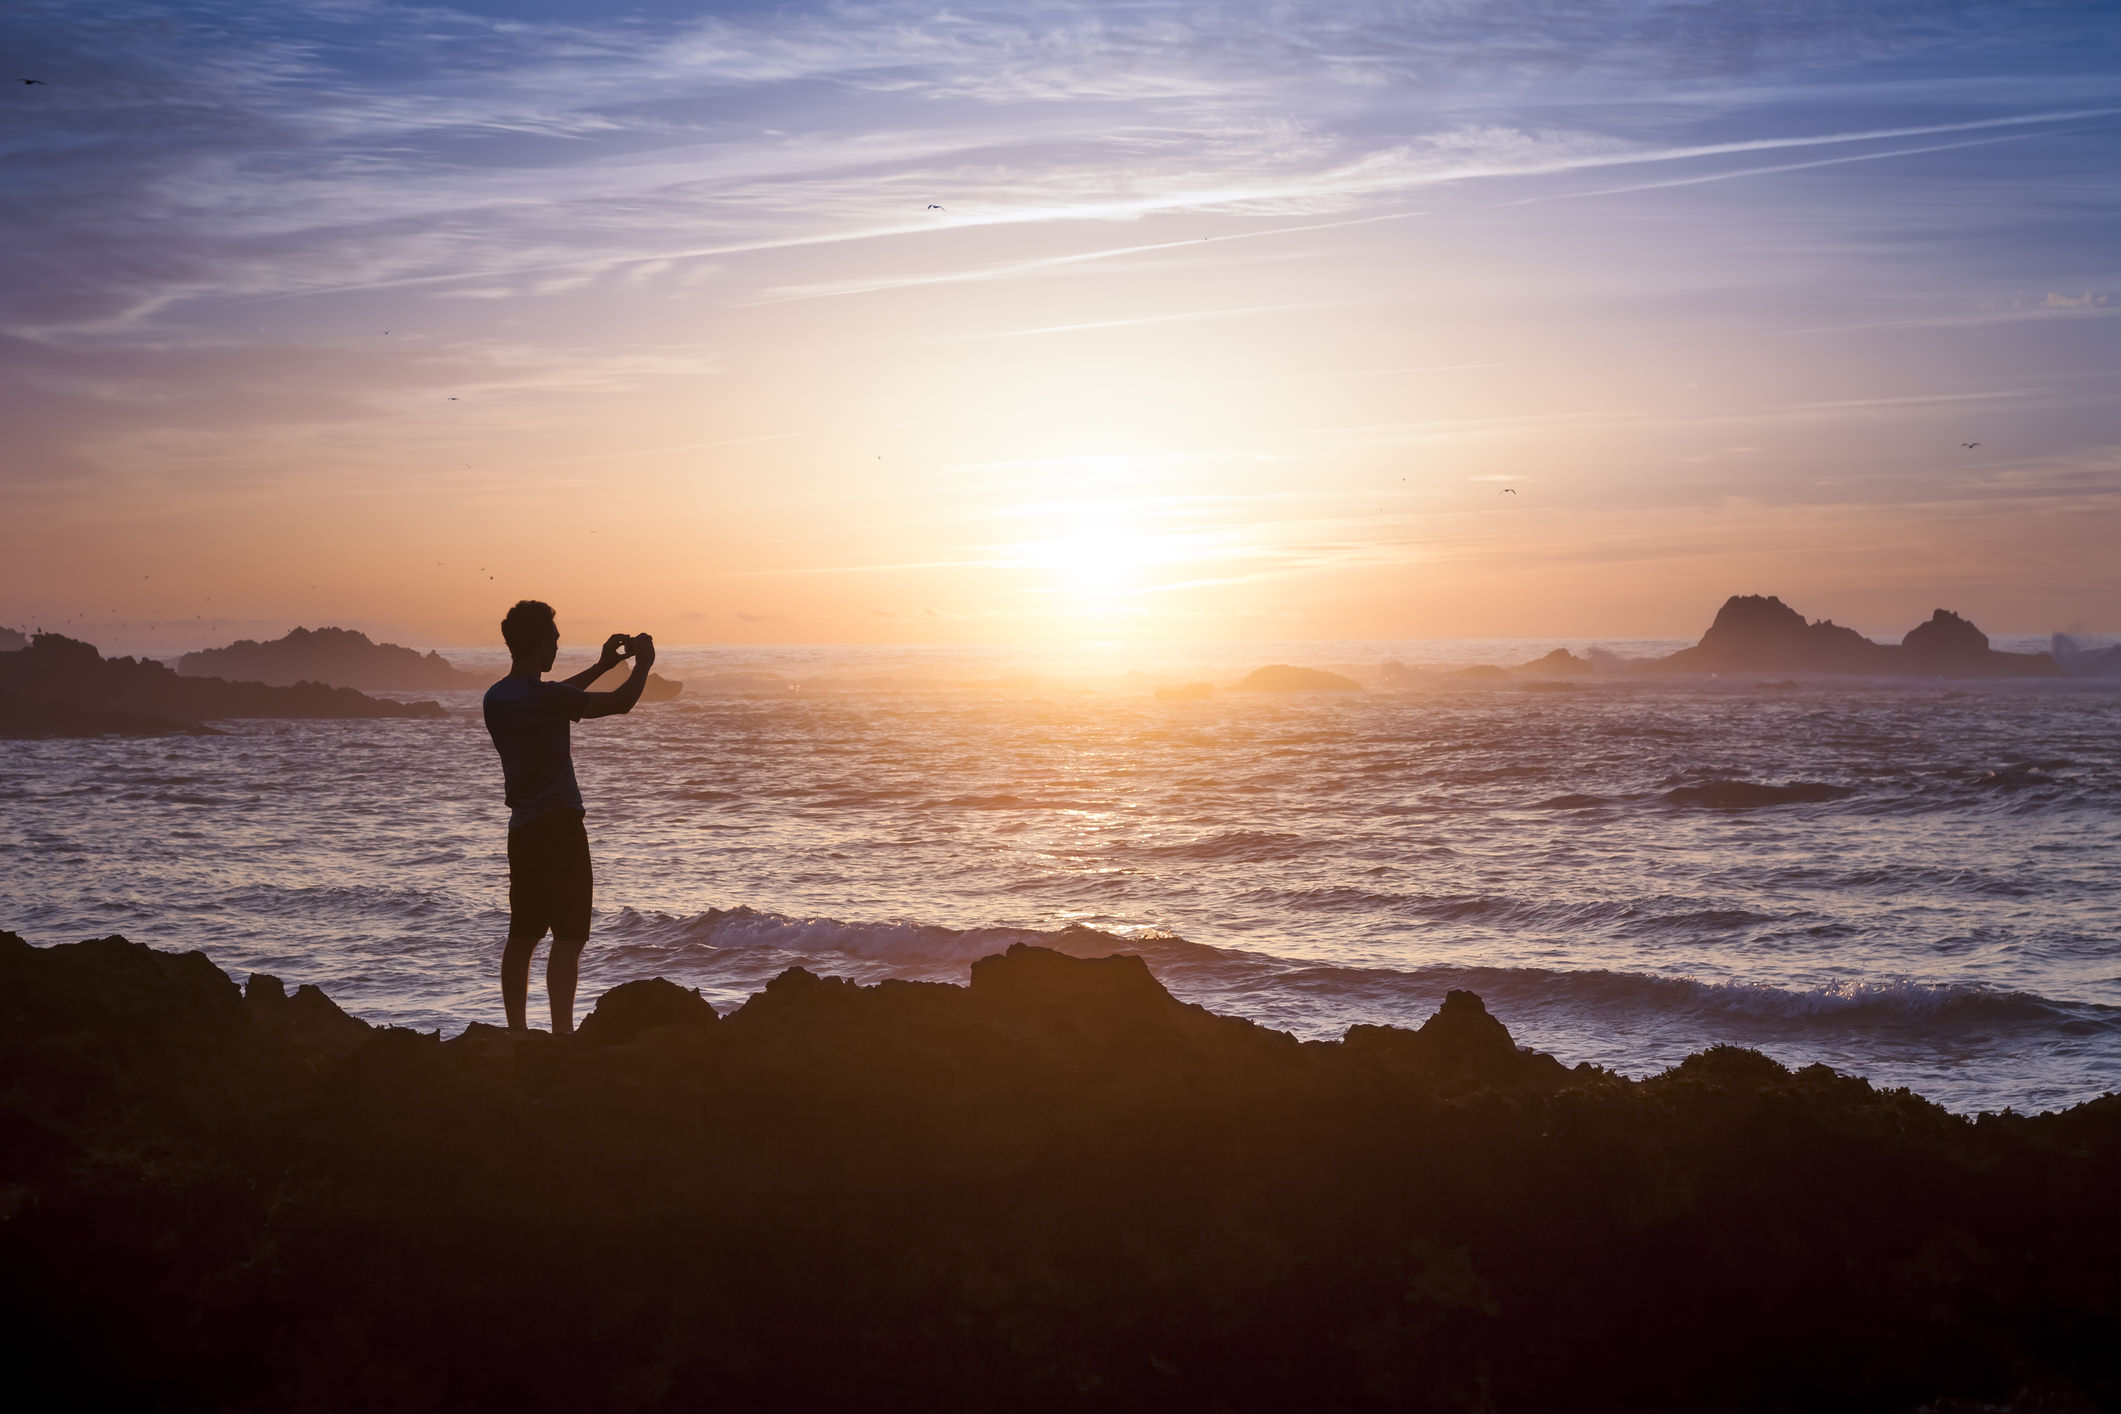 Mastering Mobile Photography and Getting the Most Out of Your Photos